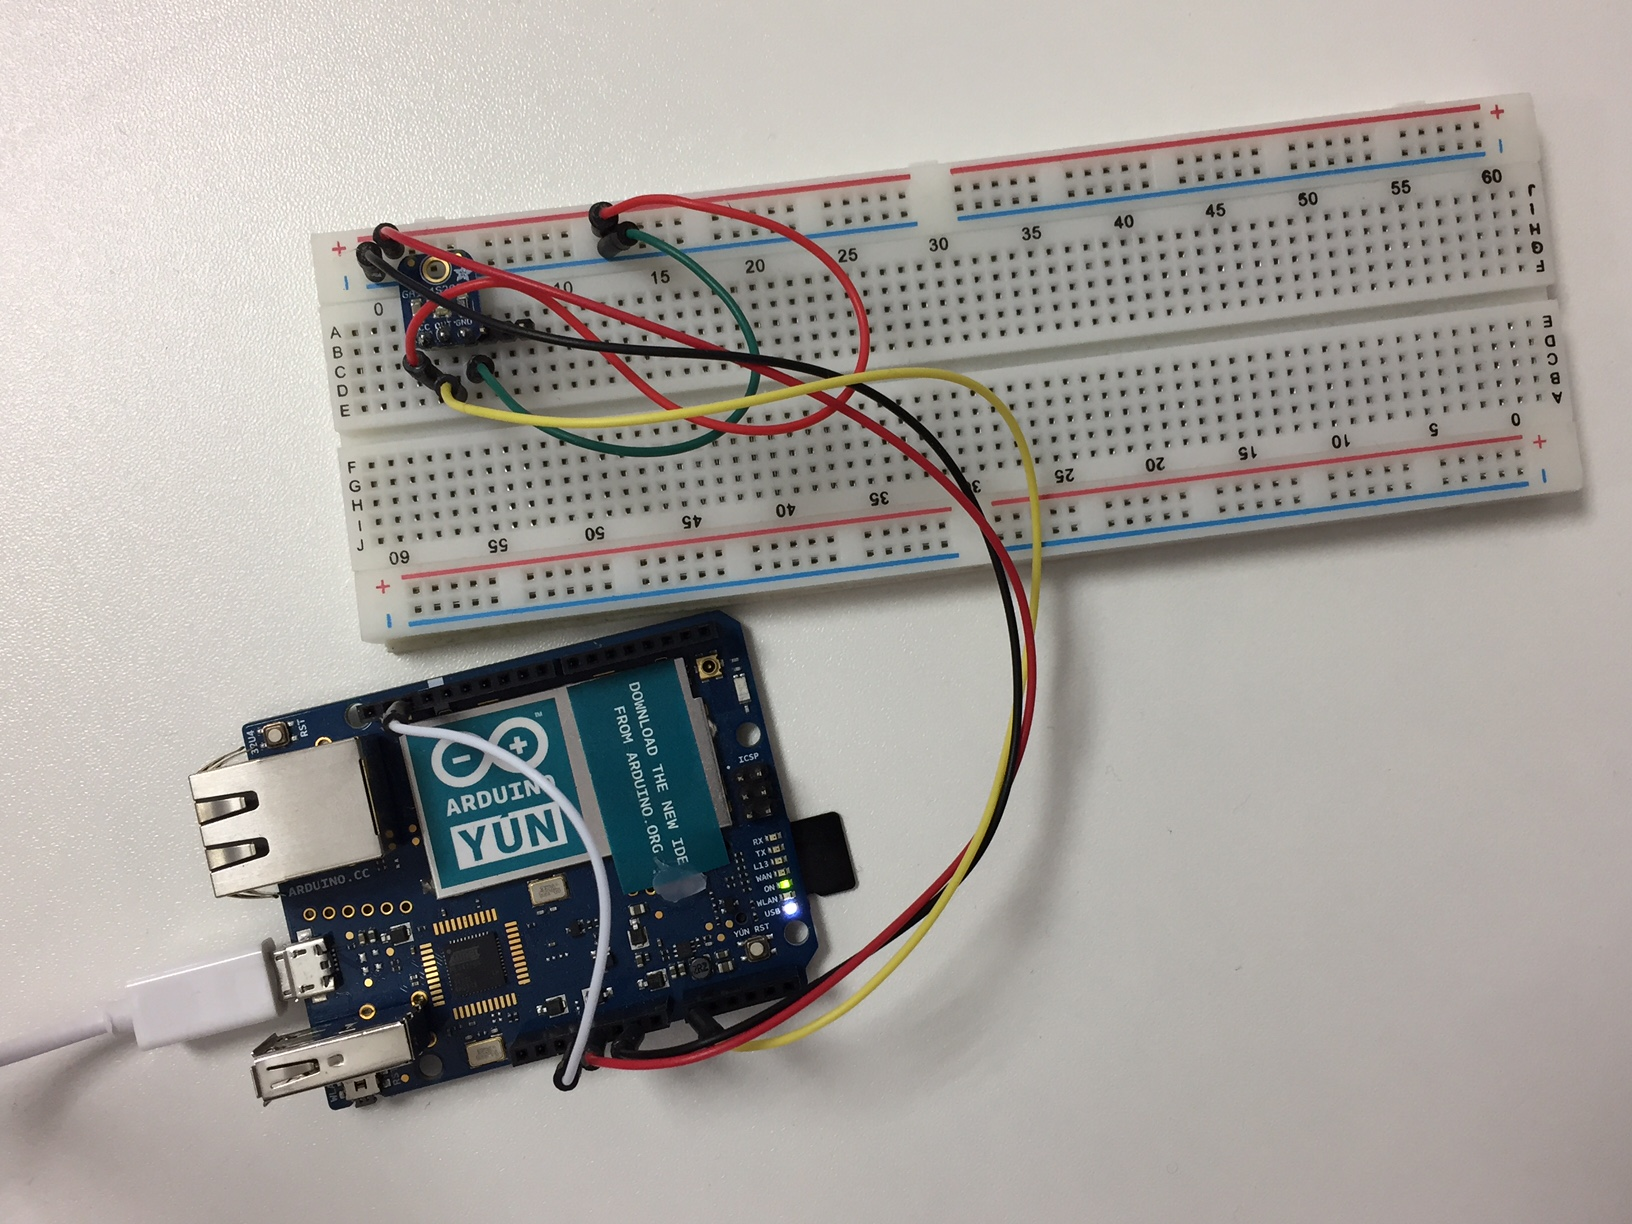 Sending data from an Arduino to the cloud using JSON and MQTT